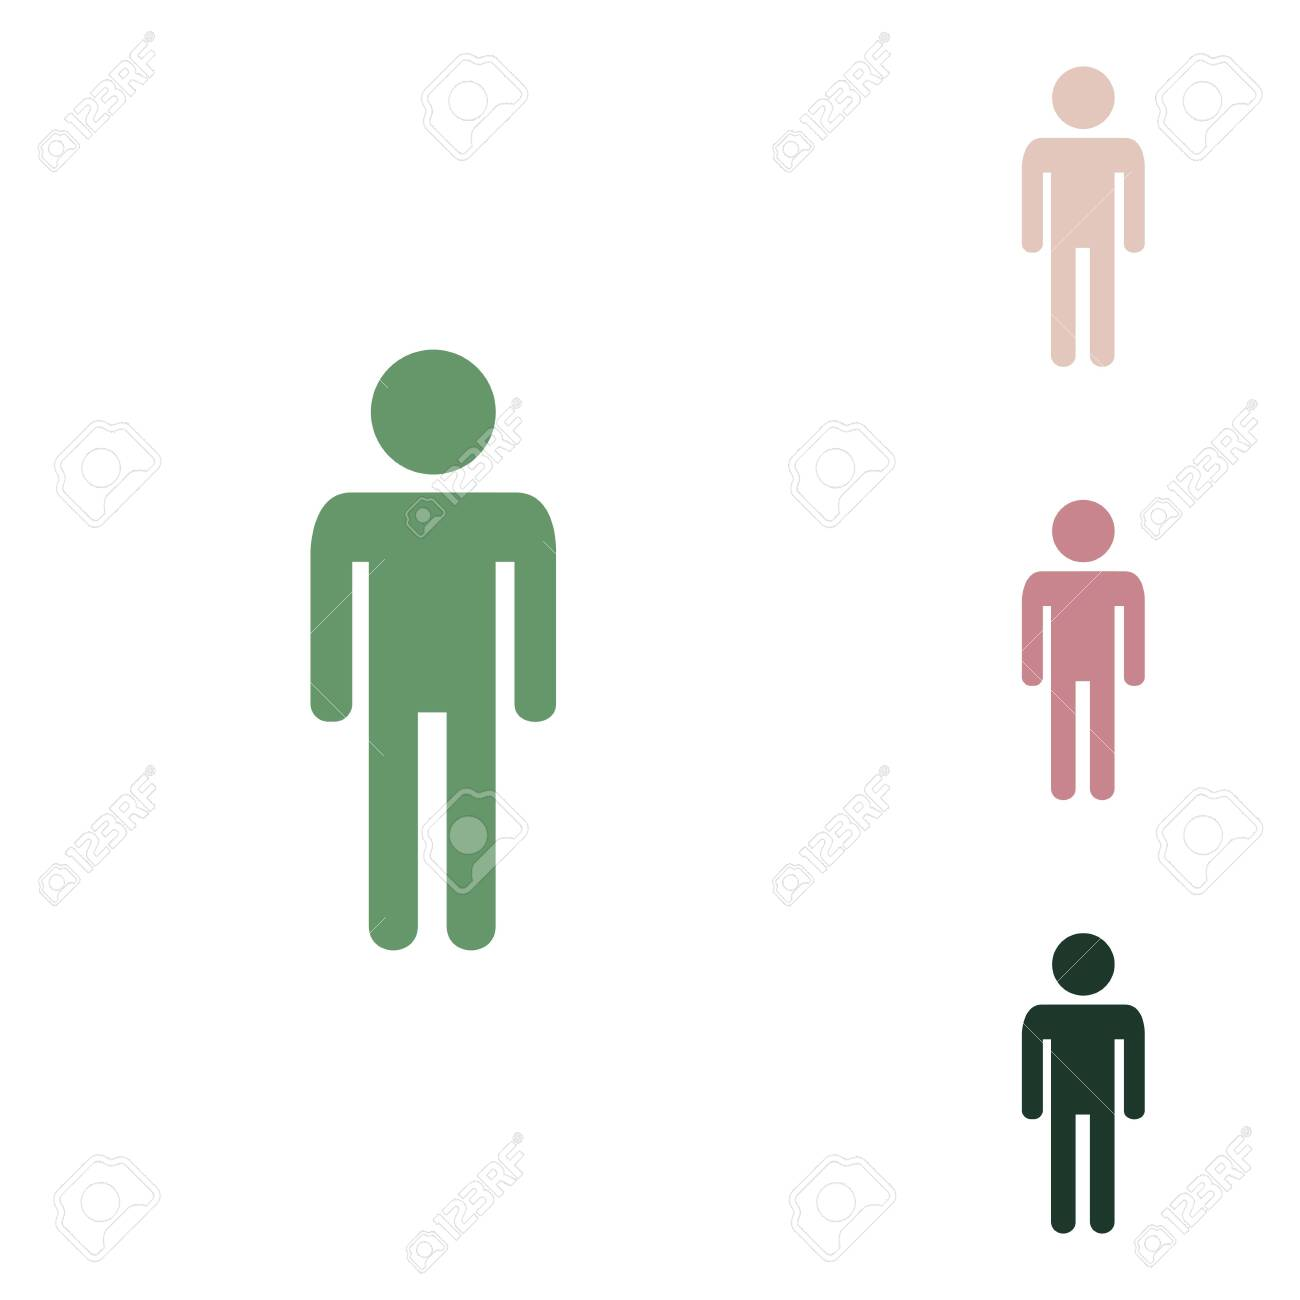 Man sign illustration. Russian green icon with small jungle green, puce and desert sand ones on white background. - 148103648